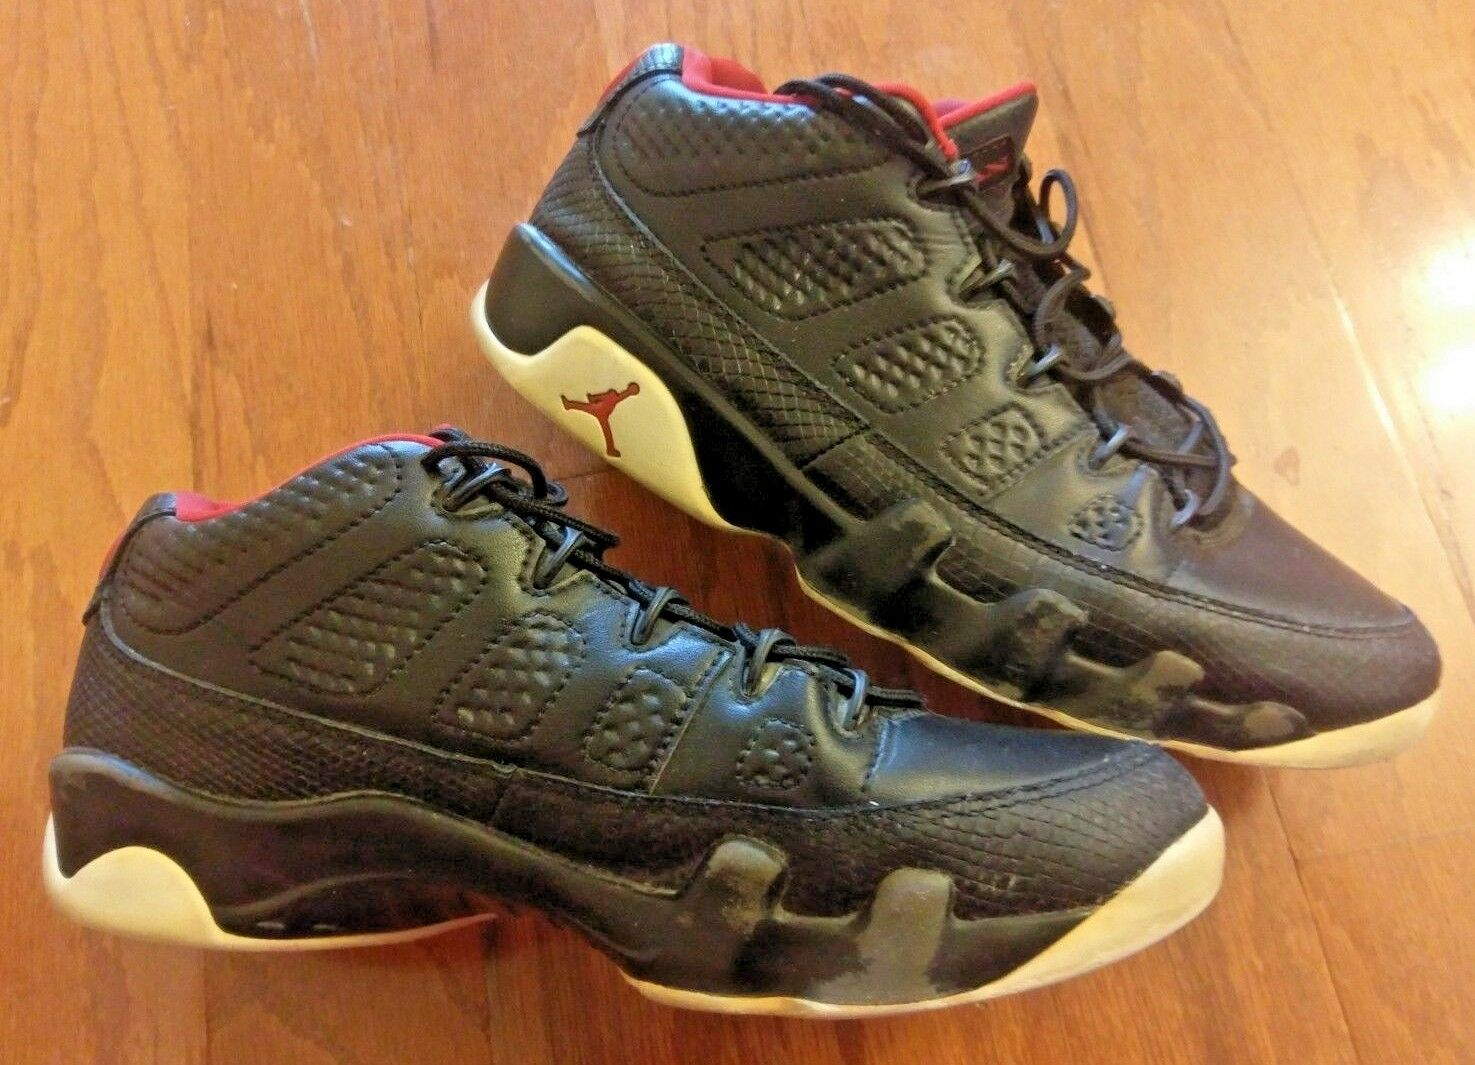 NIKE AIR JORDAN 9 RETRO LOW